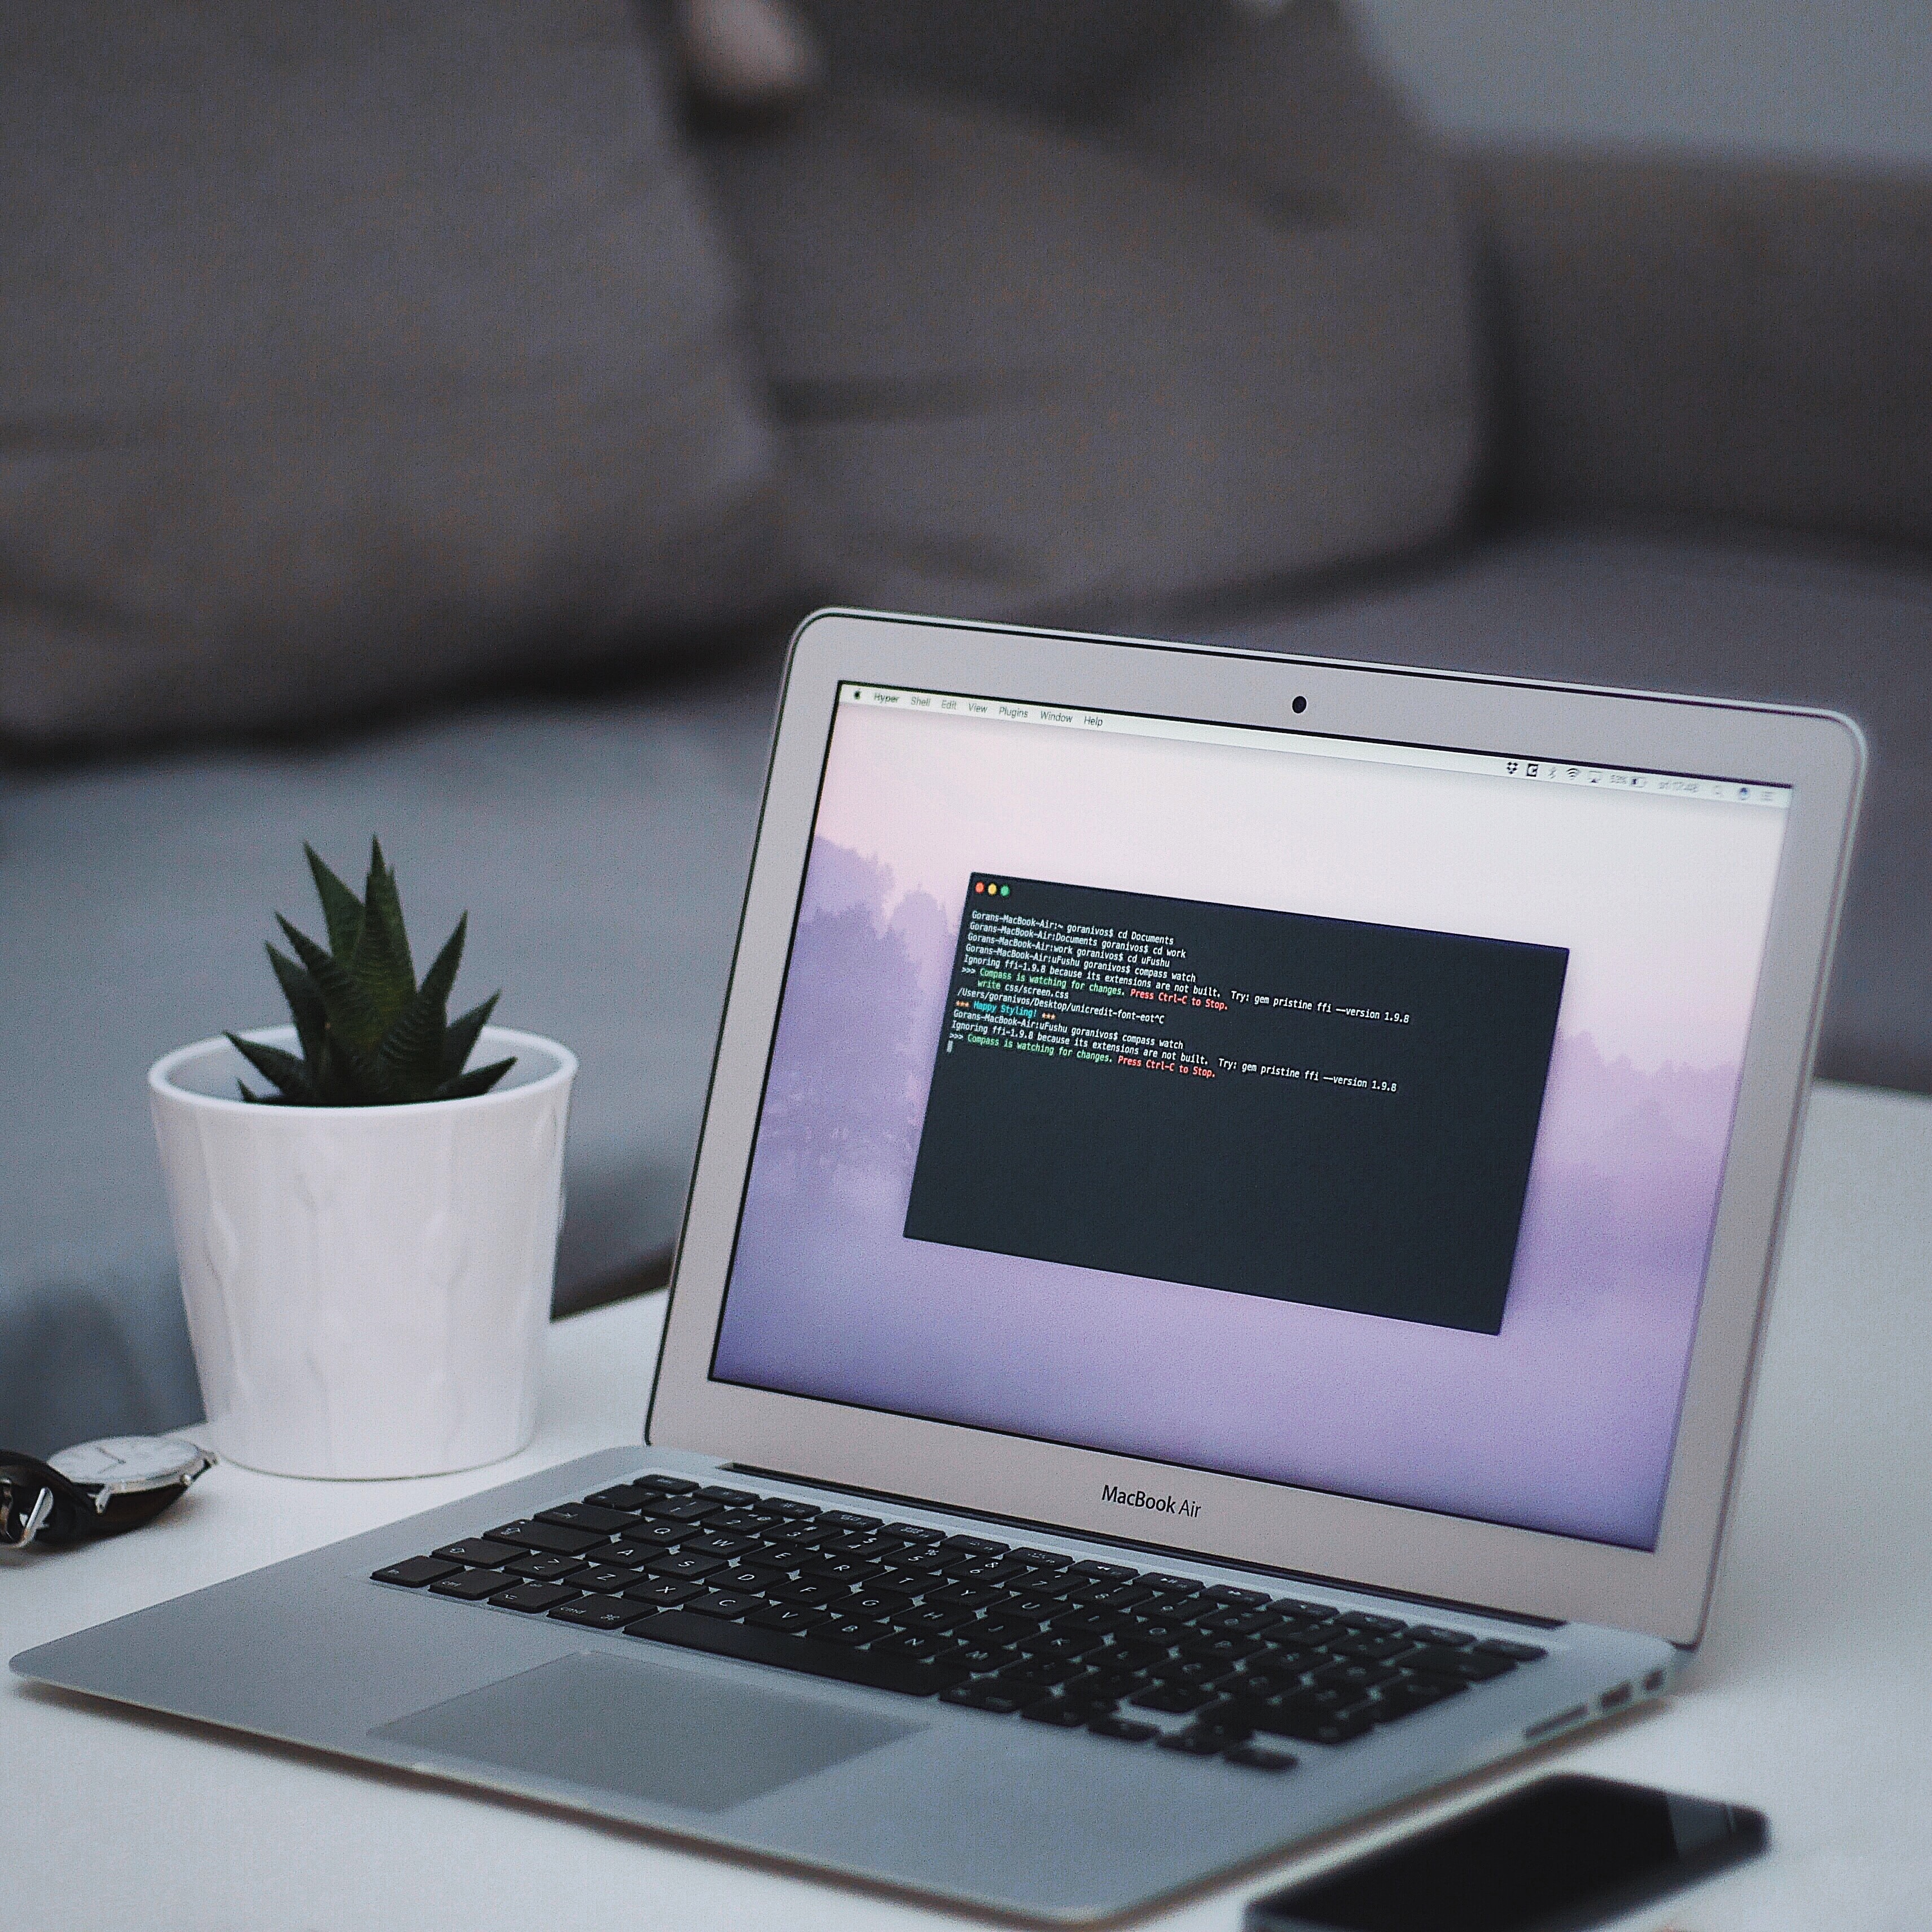 A MacBook with lines of code on its screen